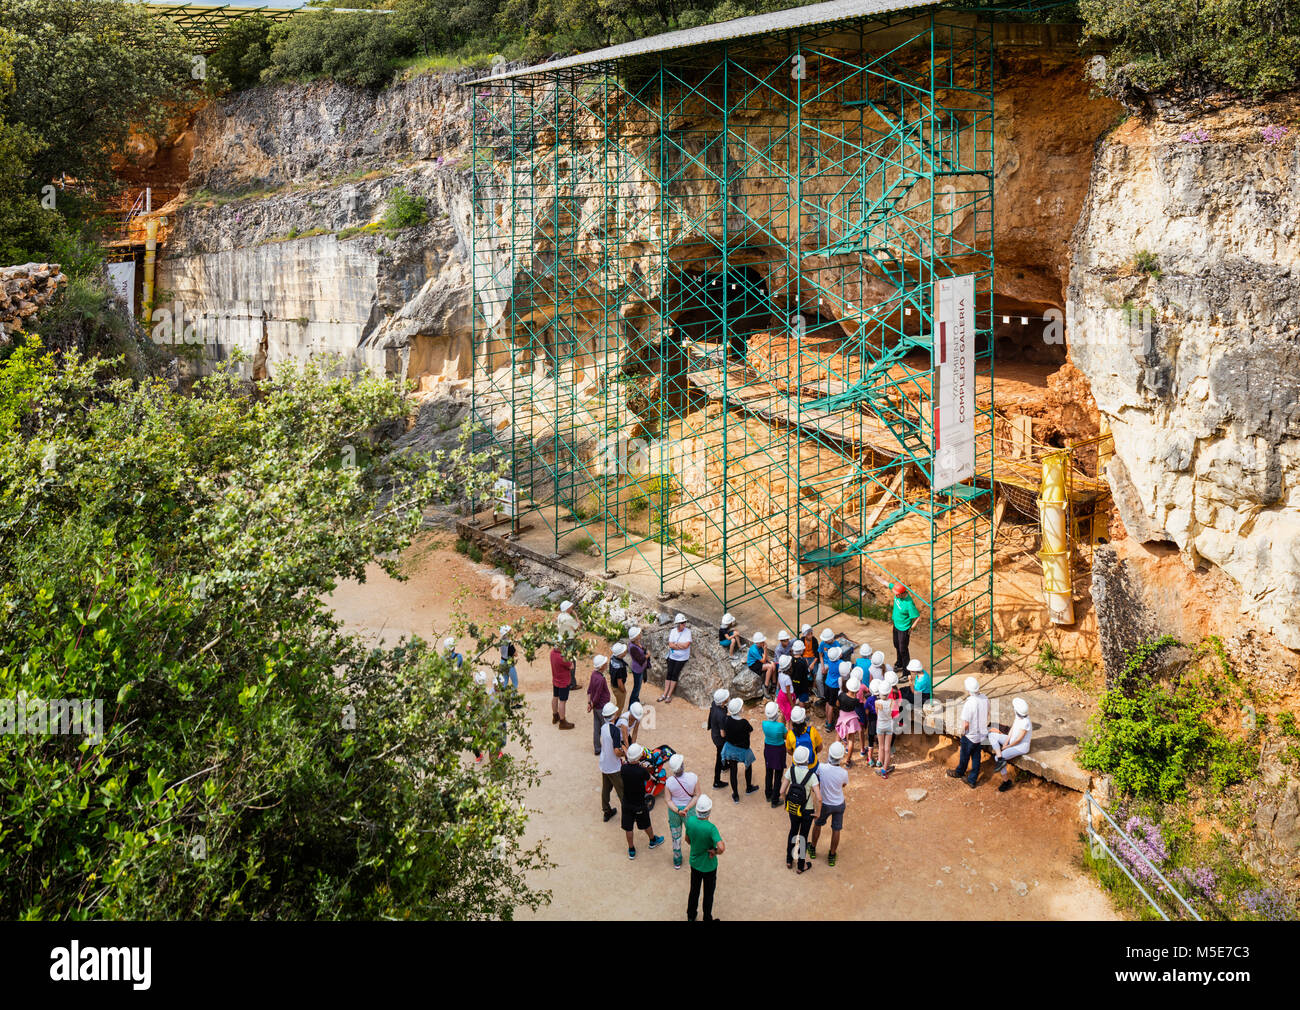 Visitors listening to an archeological guide at the Archeological site of Atapuerca, a UNESCO World Heritage Site - Stock Image